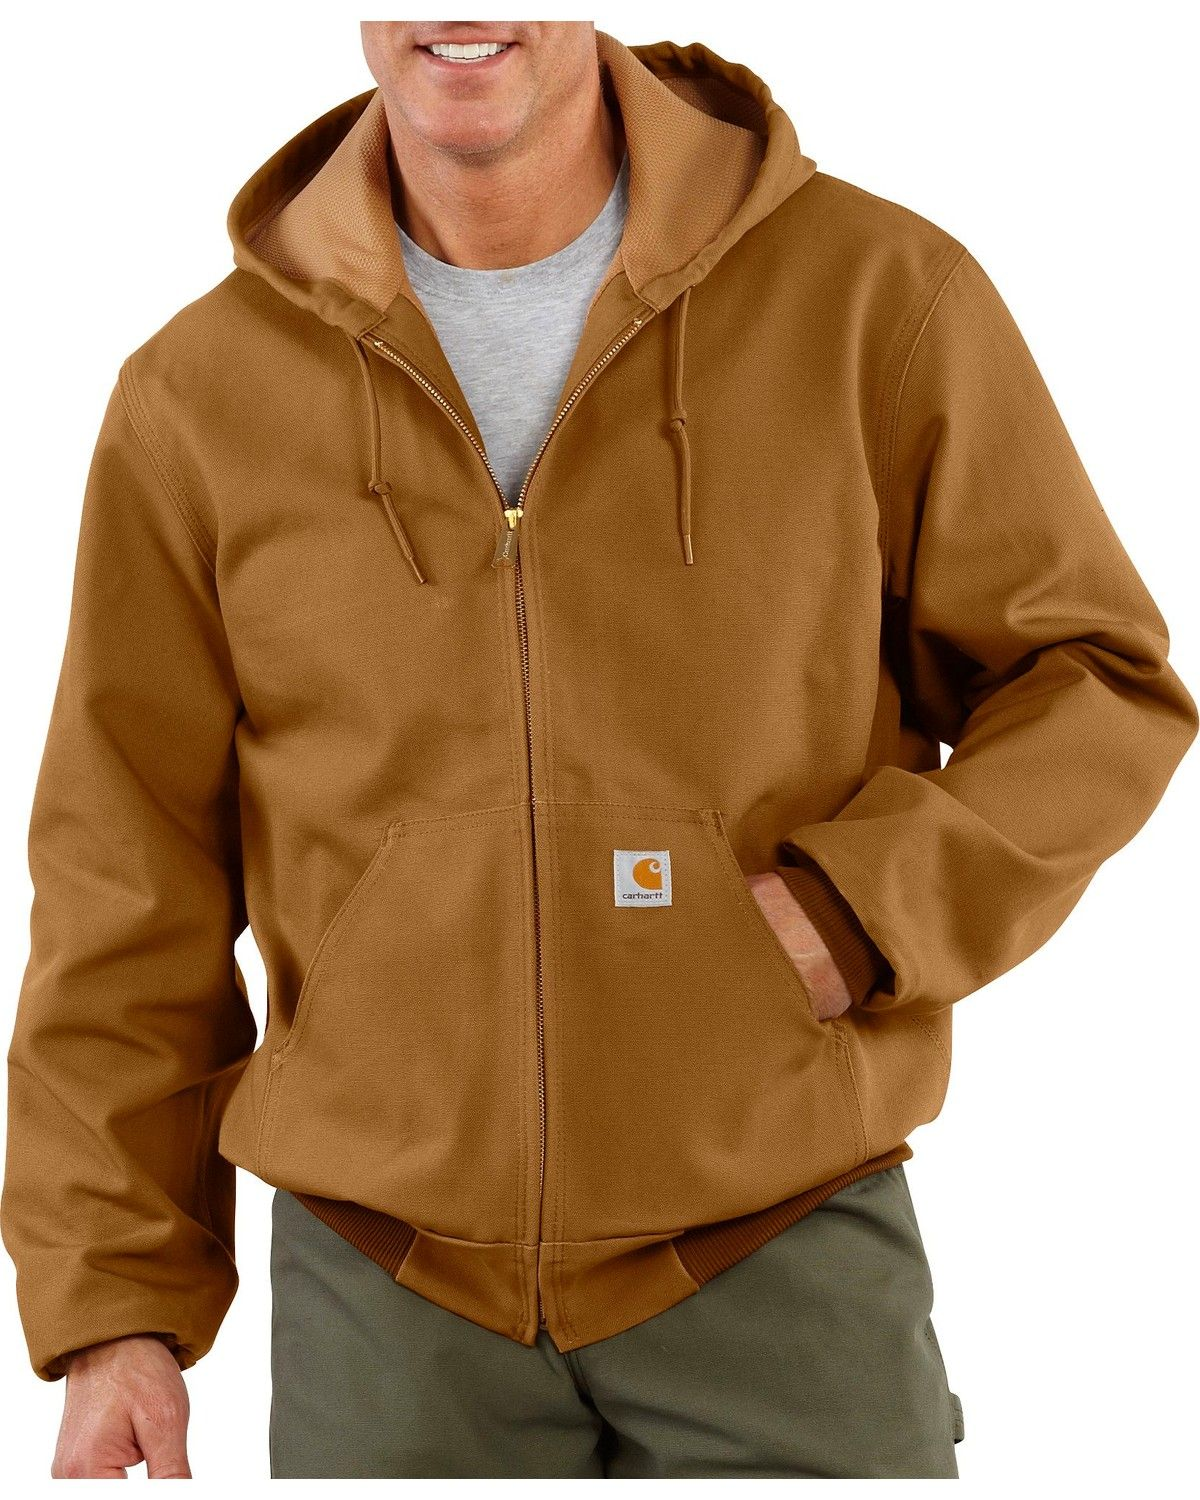 Carhartt Thermal Lined Canvas Hooded Jacket Carhartt Jacket Active Jacket Carhartt Mens [ 1500 x 1200 Pixel ]